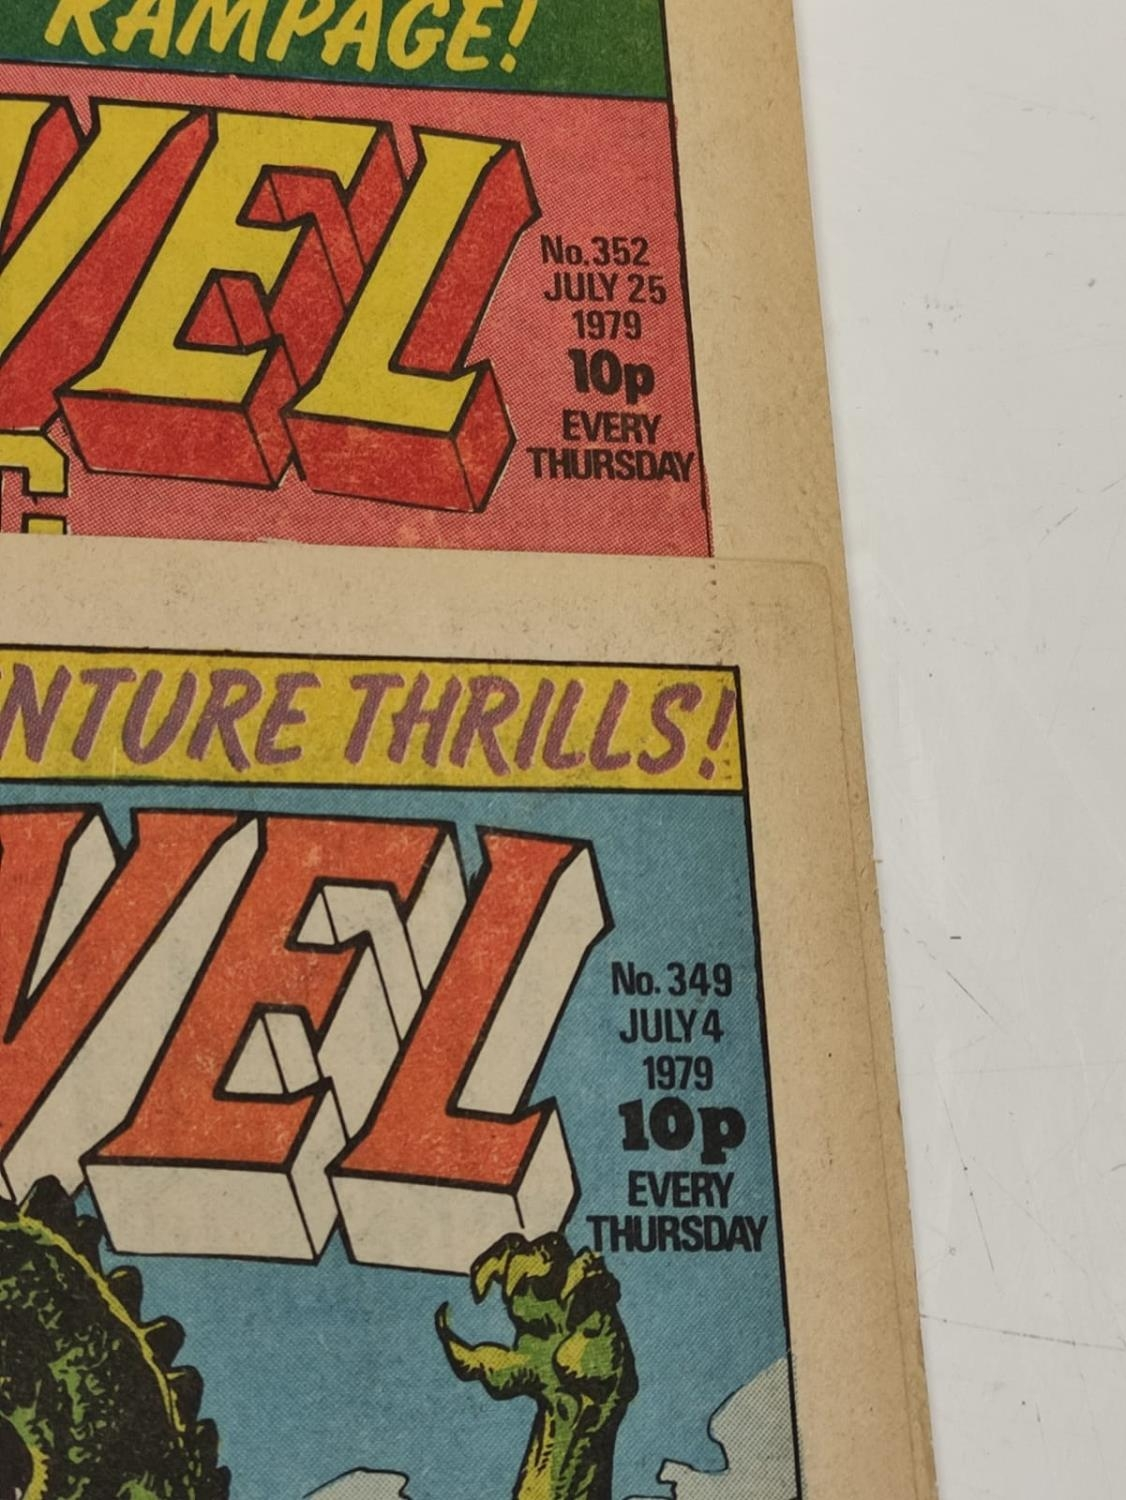 20 editions of mixed Vintage Marvel Comics. - Image 36 of 56